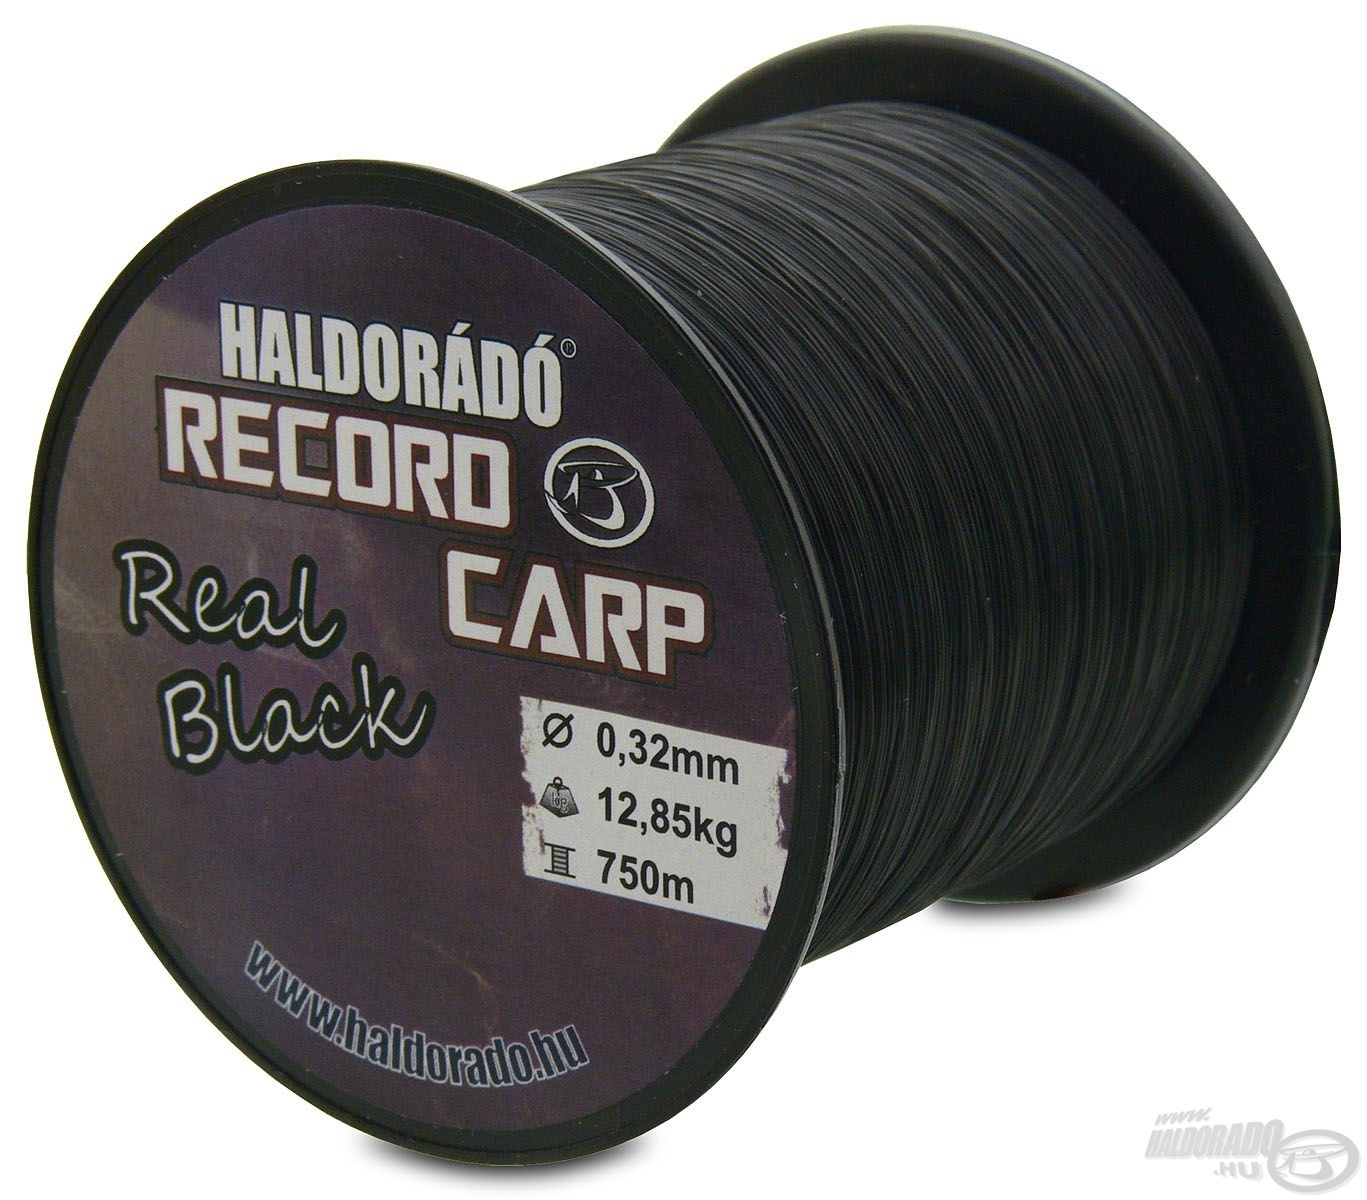 HALDOR�D�, Record Carp Real Black 0,24 mm / 900 m